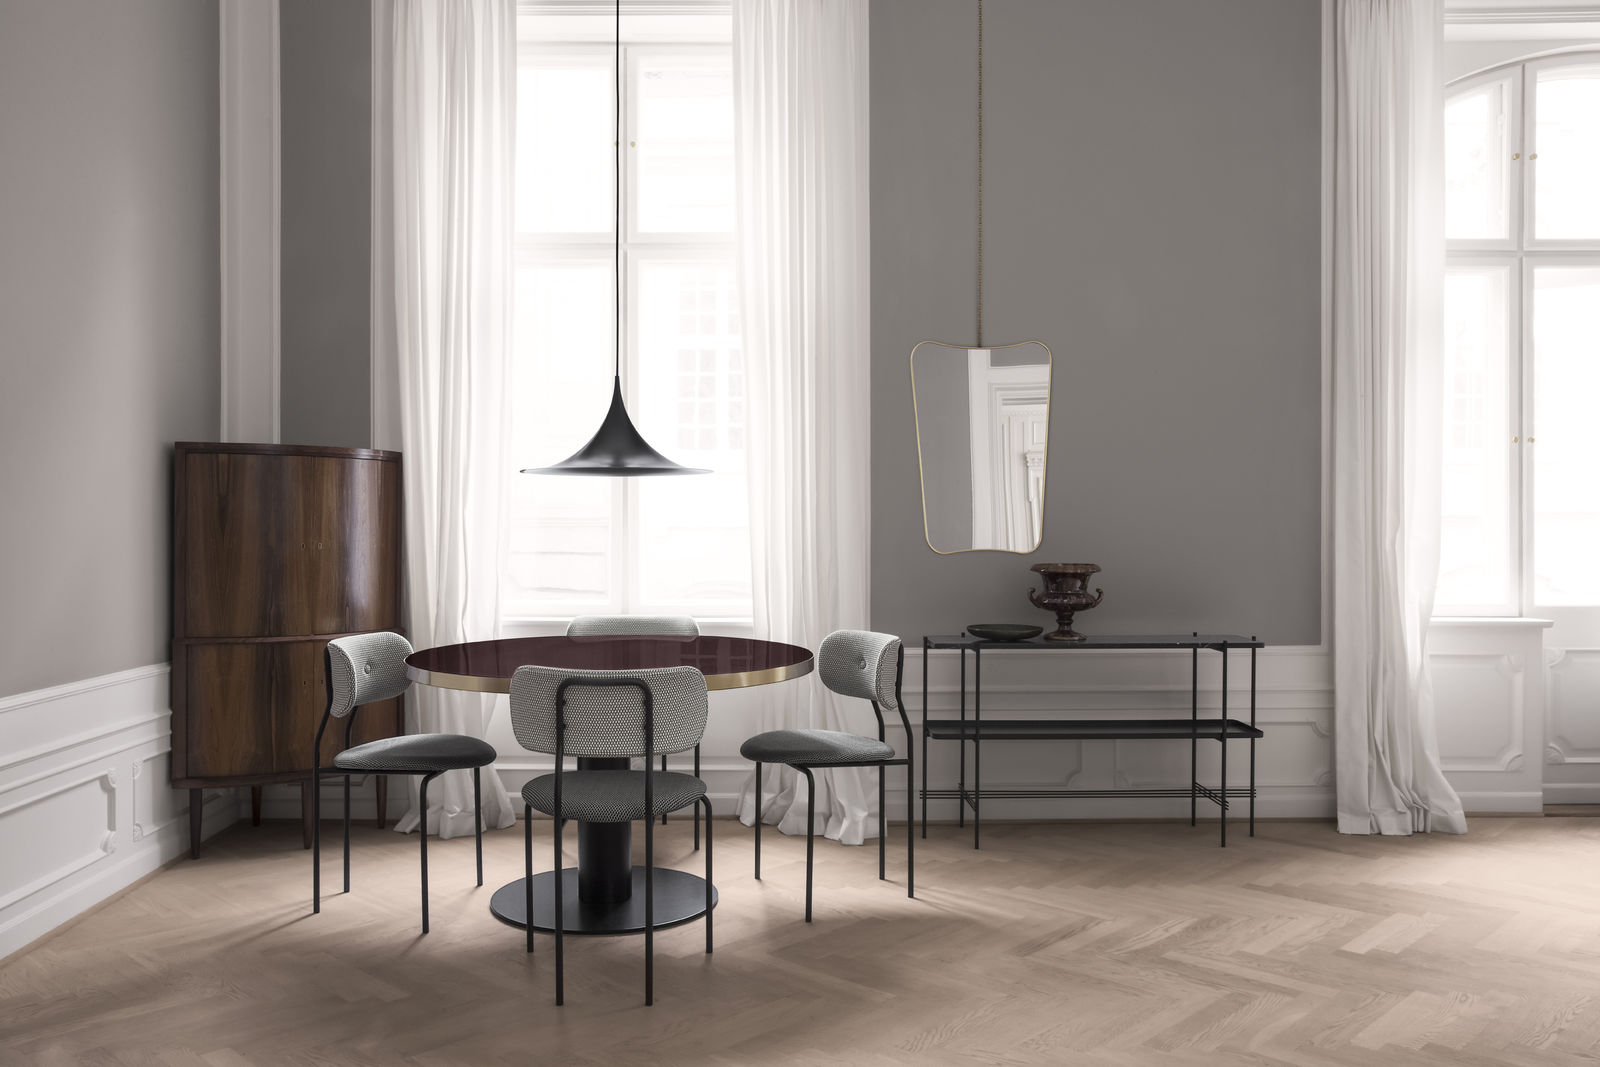 coco-chair-korb-mc741e00-mc741e09_gubi-table-2-0-cherry-red_semi-pendant_fa-33-mirror_ts-console_chain-1600x1600